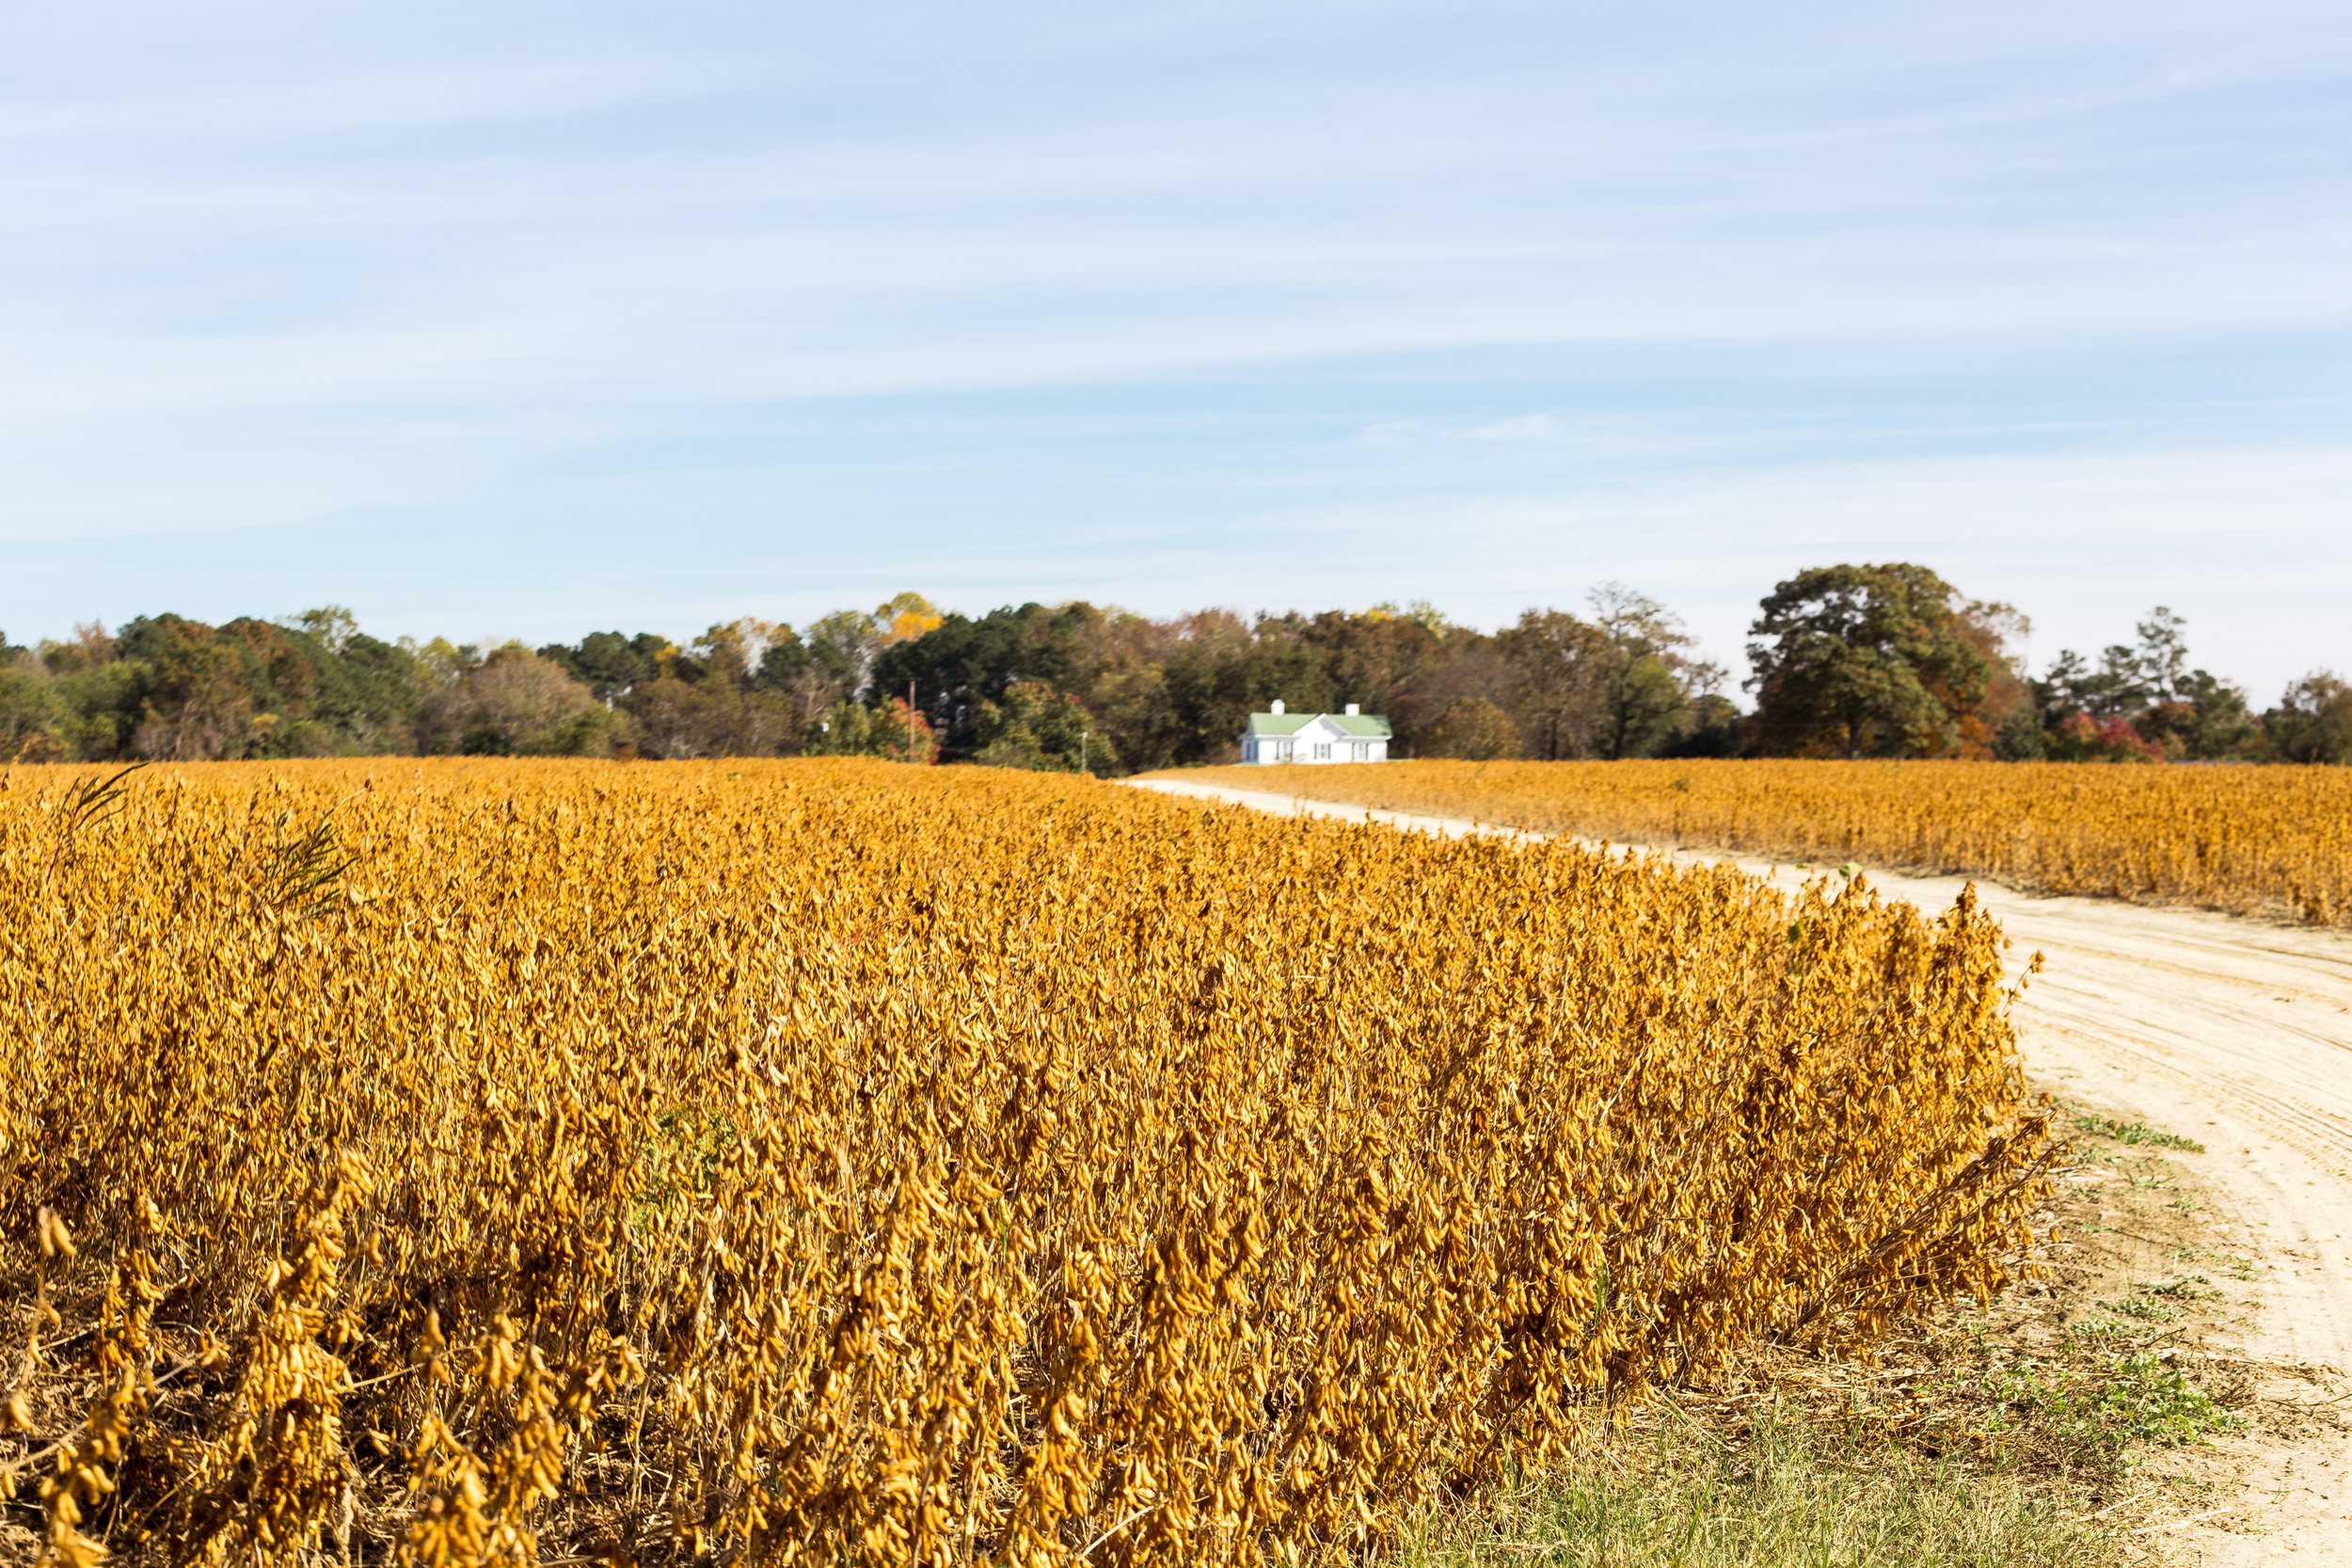 View of the farm house from the perspective of the fields.